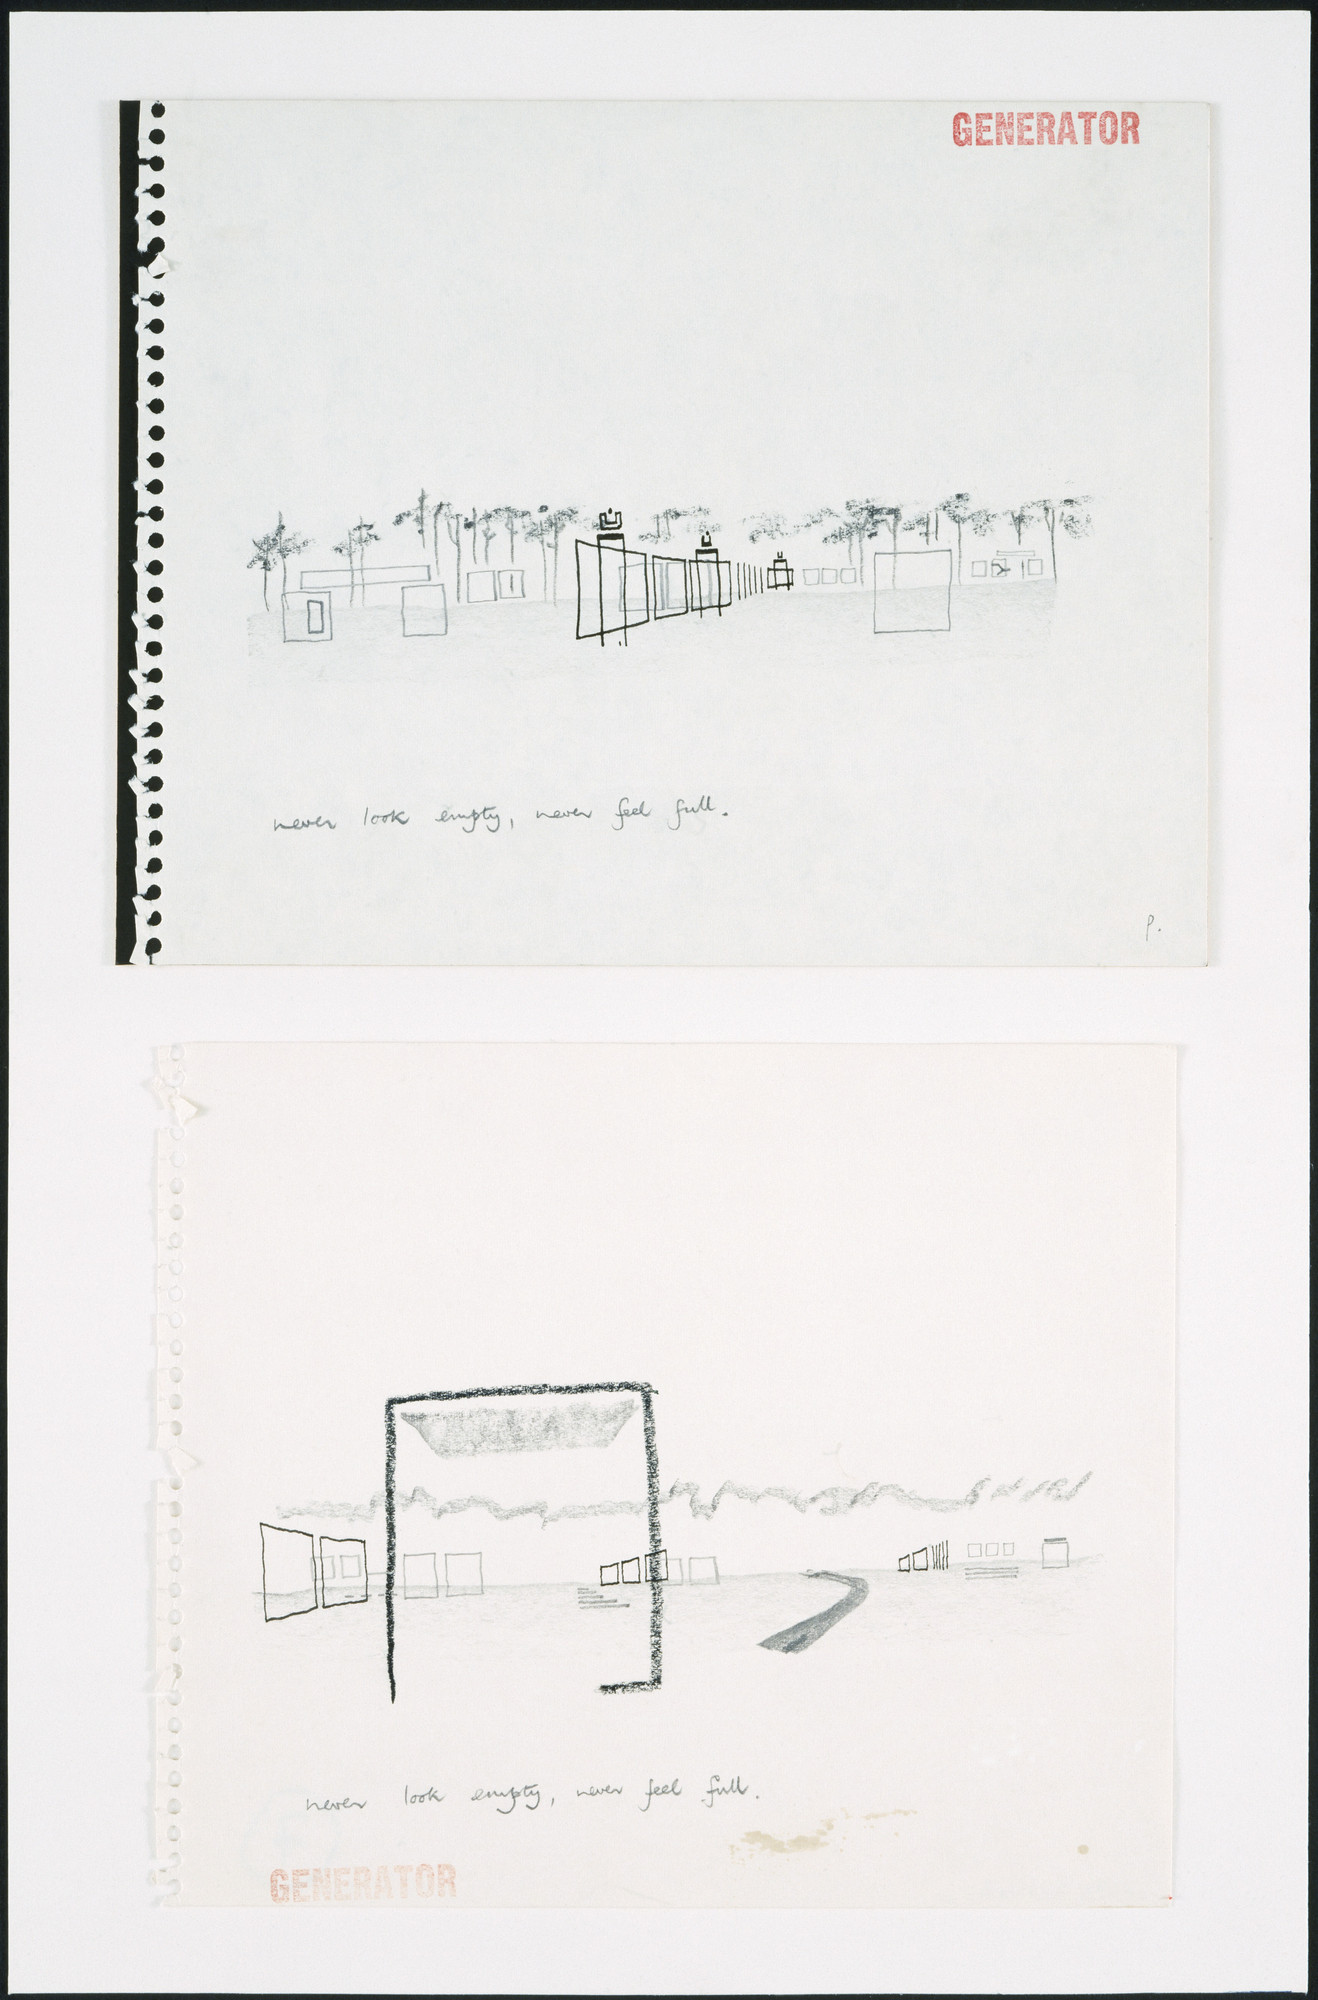 Cedric Price. Generator Project, White Oak, Florida, Overriding architectural perspectives. 1978-80.